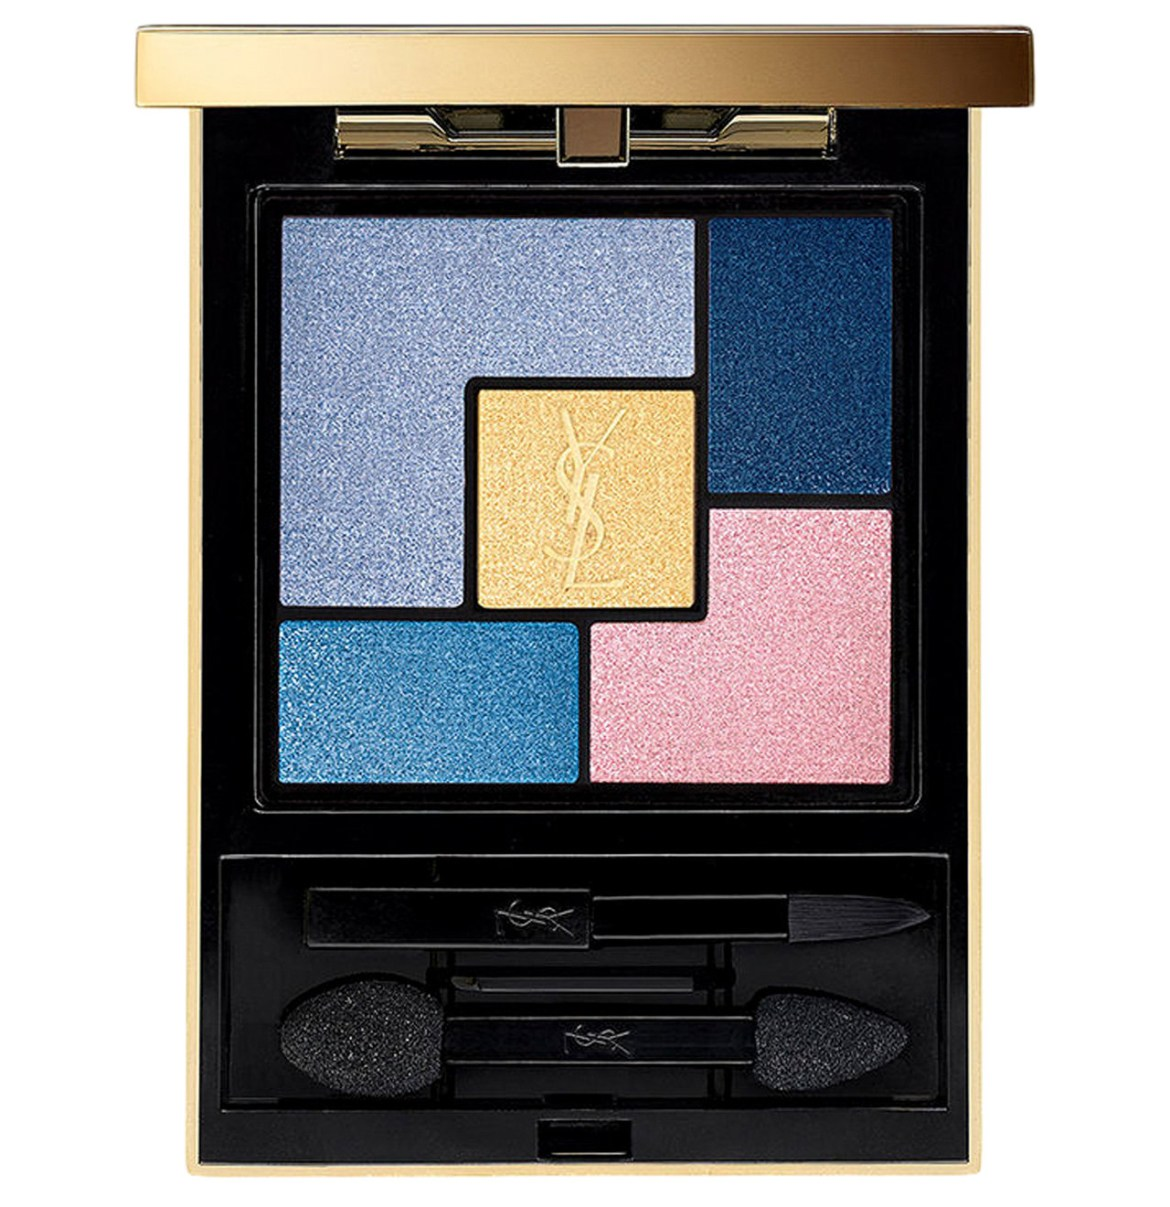 Палетка теней Couture Palette Collector Pop Illusion от YSL